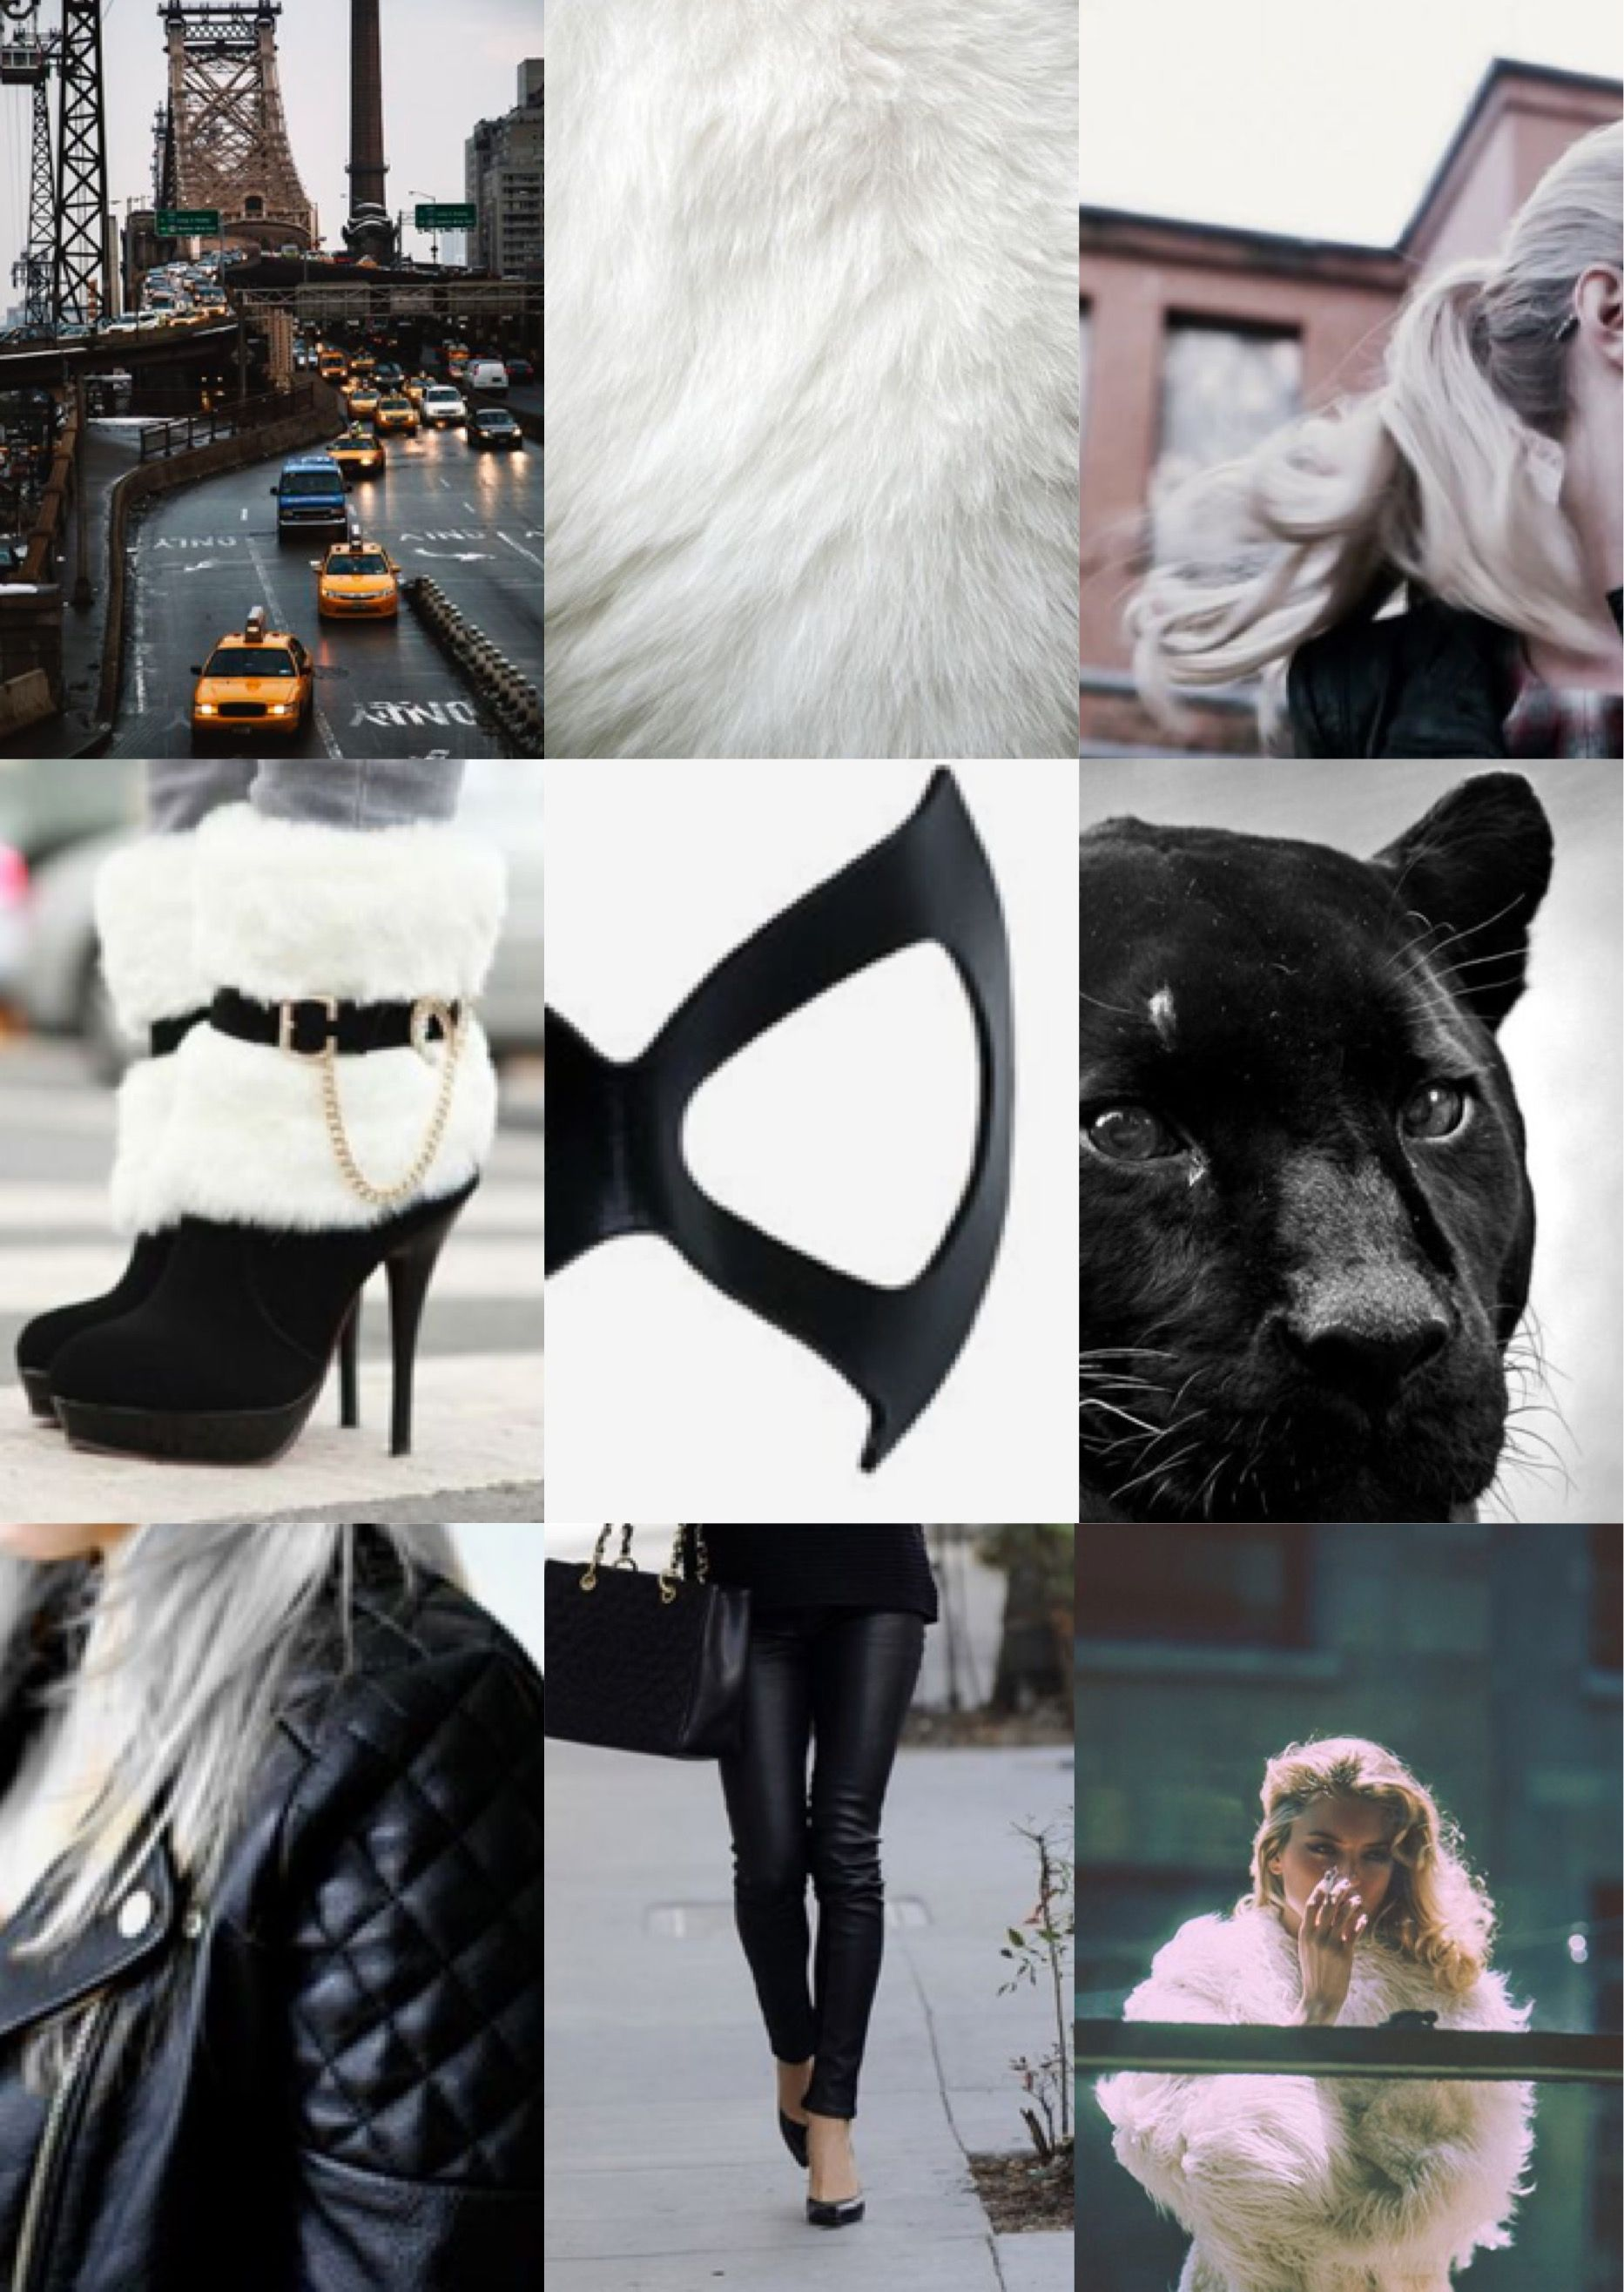 Black Cat Marvel Aesthetic Inspiration Mood Boards Marvel Black